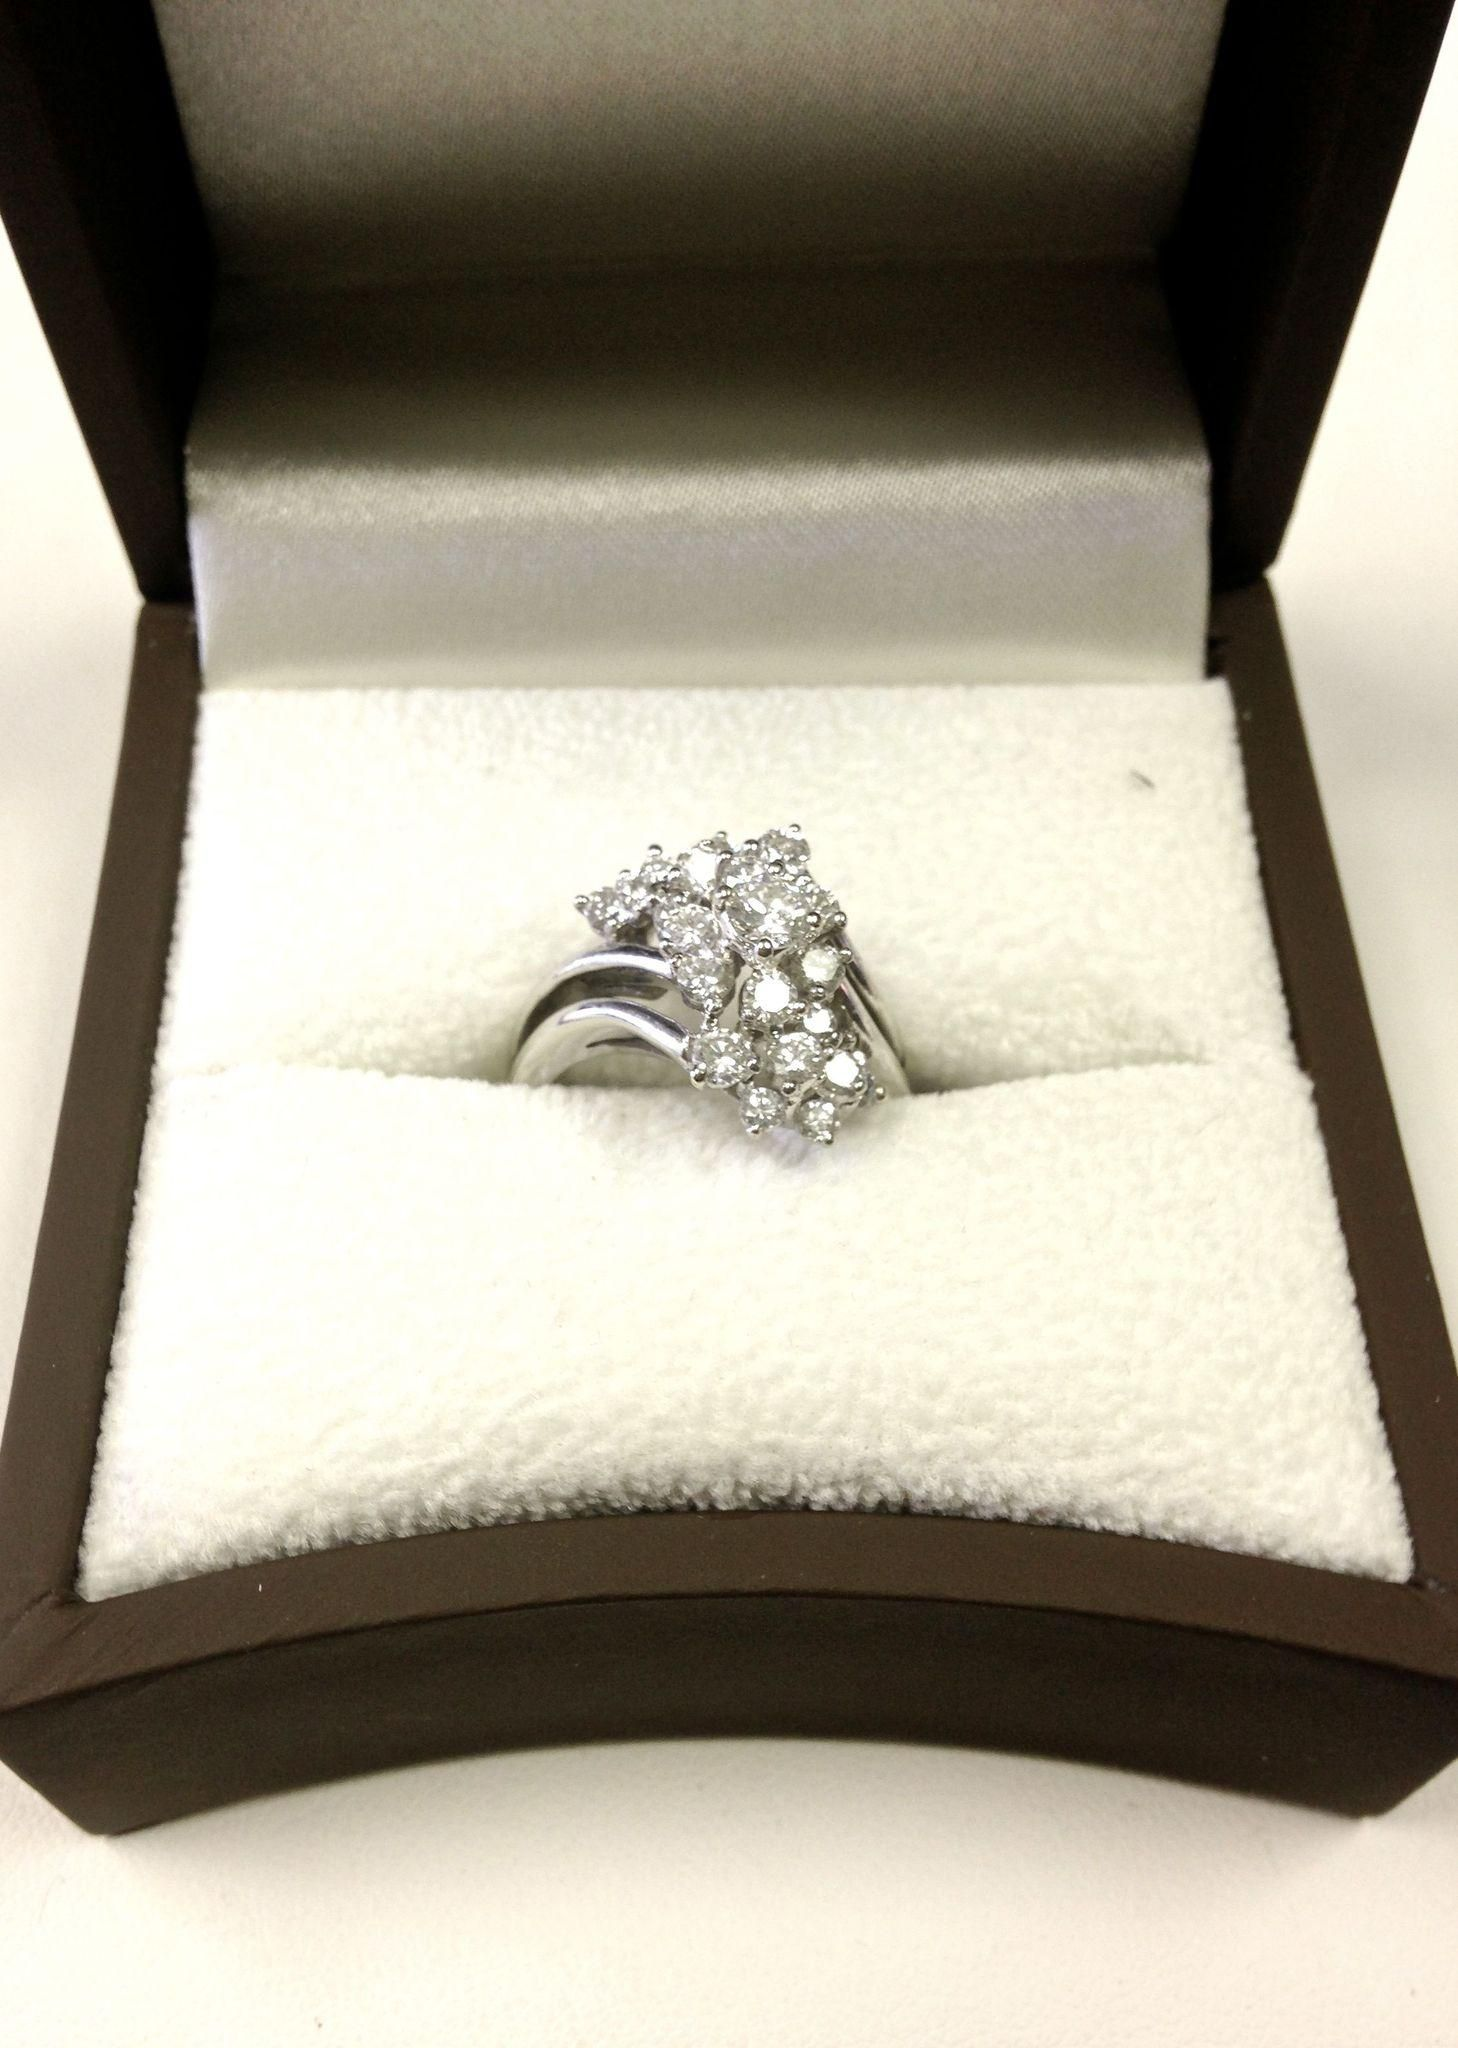 e57ace1019663 Exquisite Vintage Classic Waterfall Cluster Diamond Ring with 21 ...